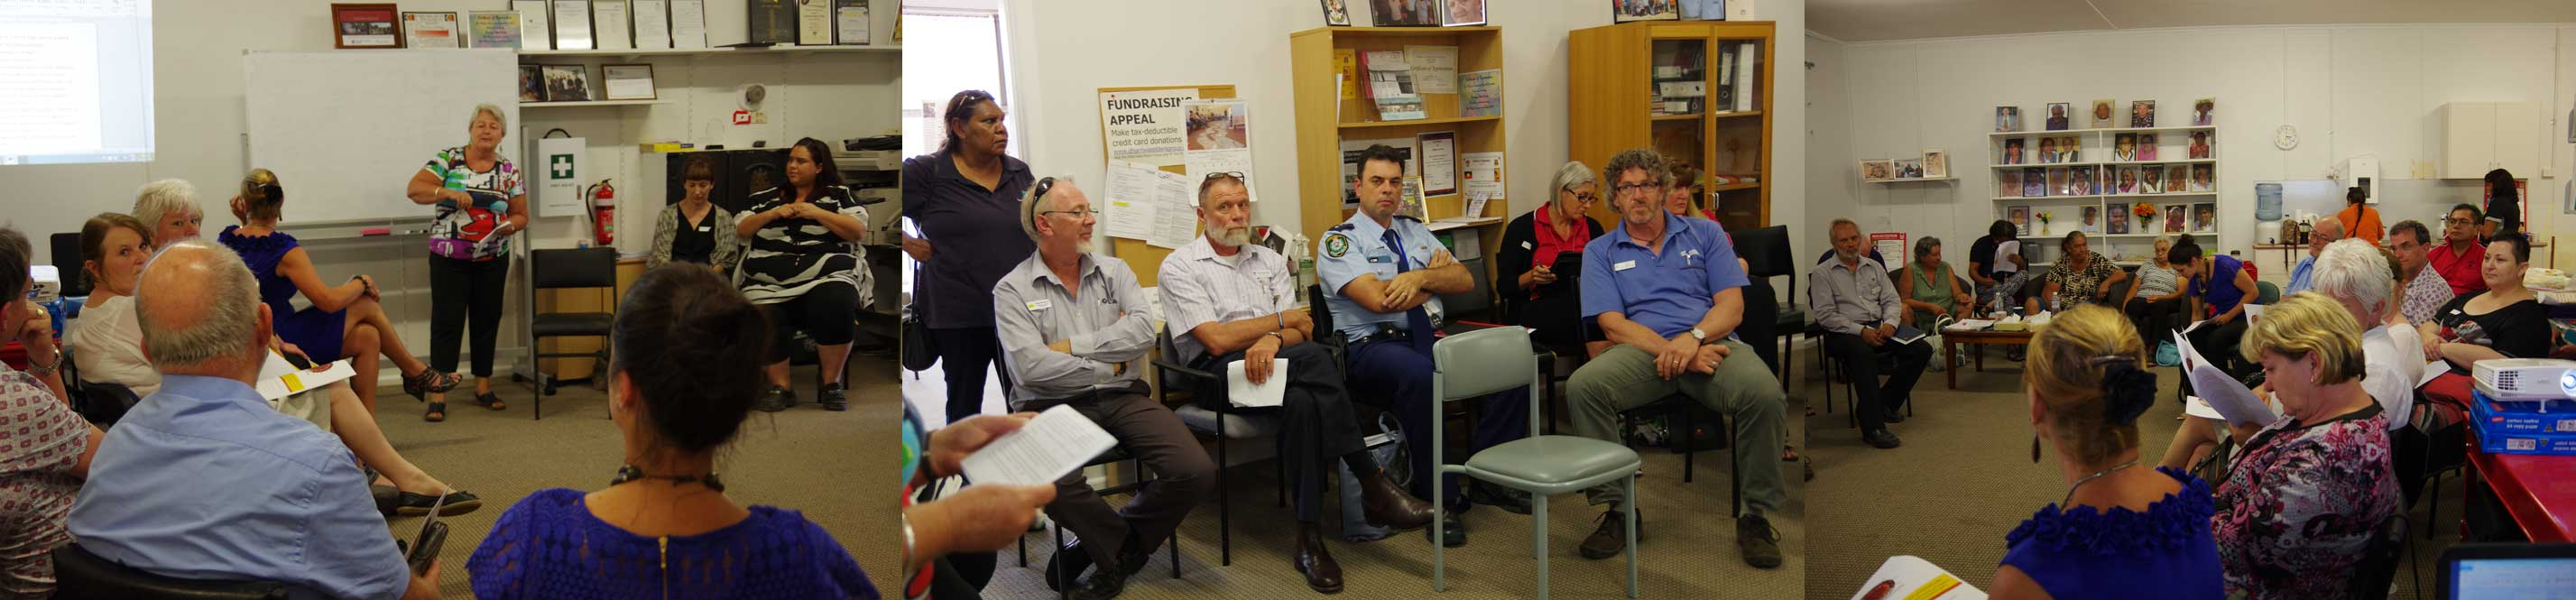 The meeting with service providers to discuss new health services needed for Walgett 11/11/15